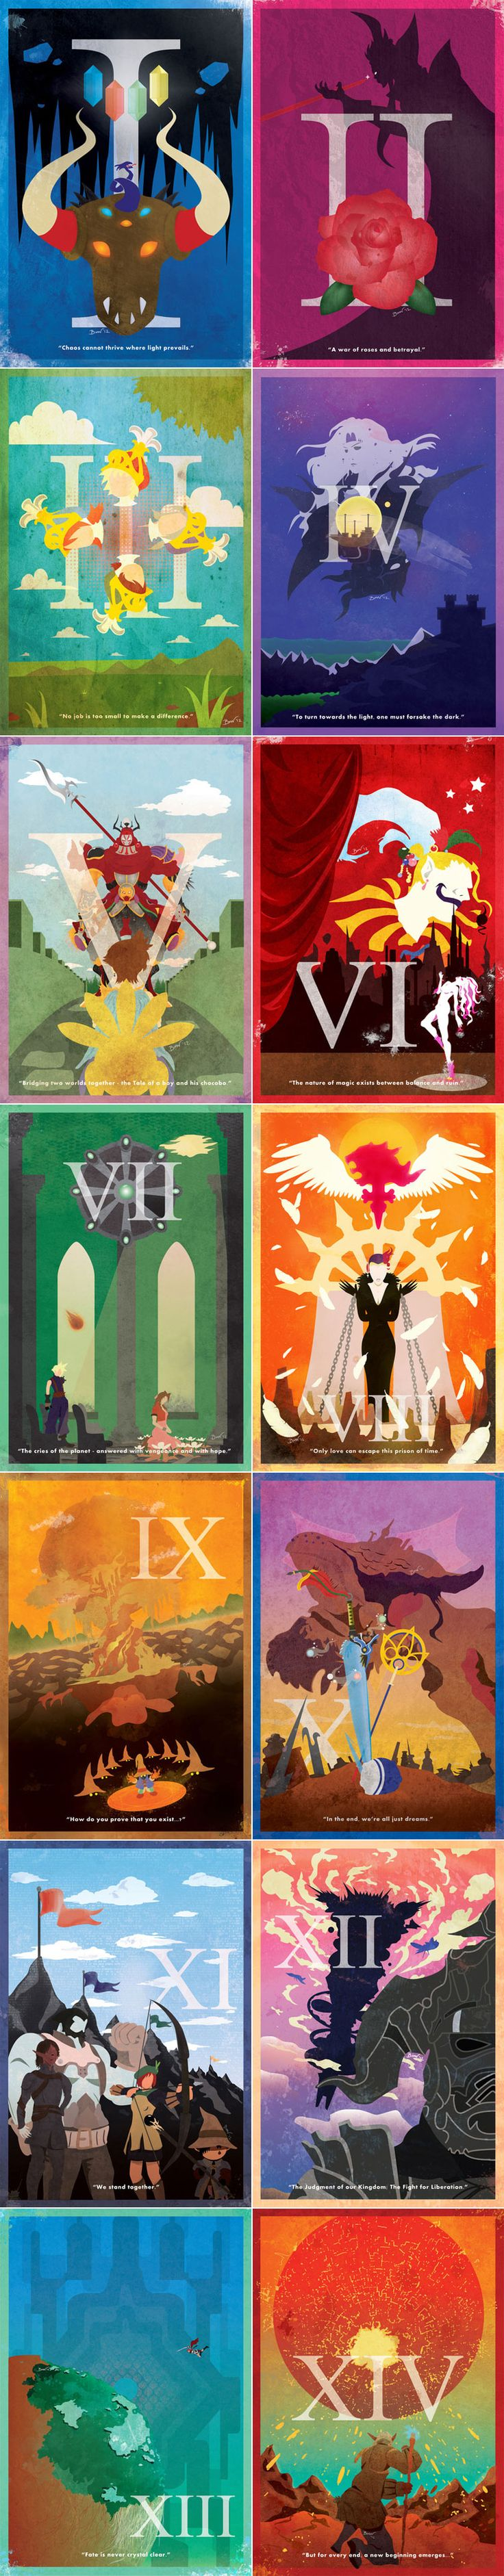 Vintage Final Fantasy Posters by BuddyIris213 (http://society6.com/BuddyIris213)